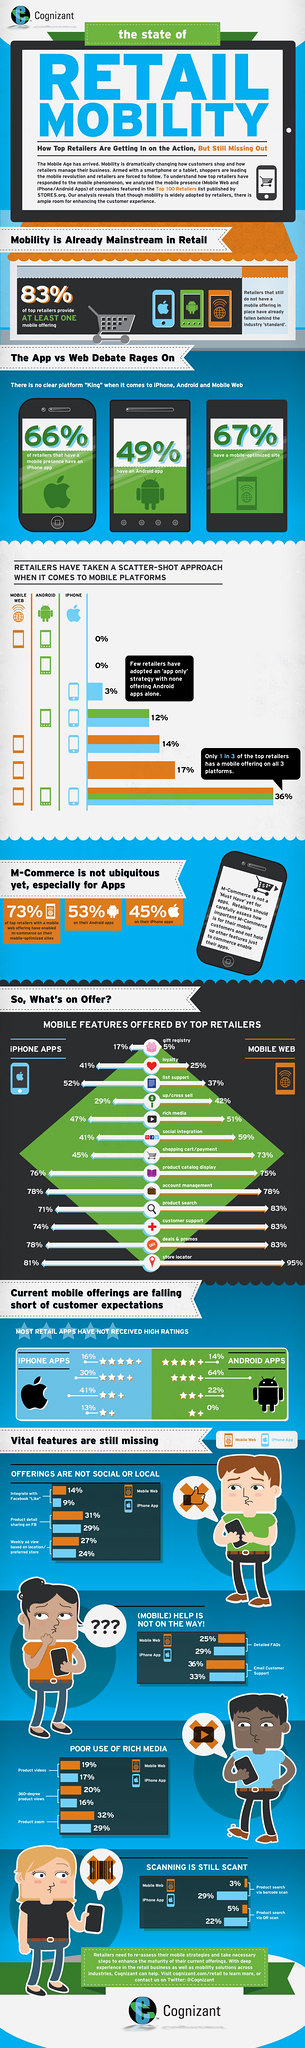 Mobility in Retail - An Infographic